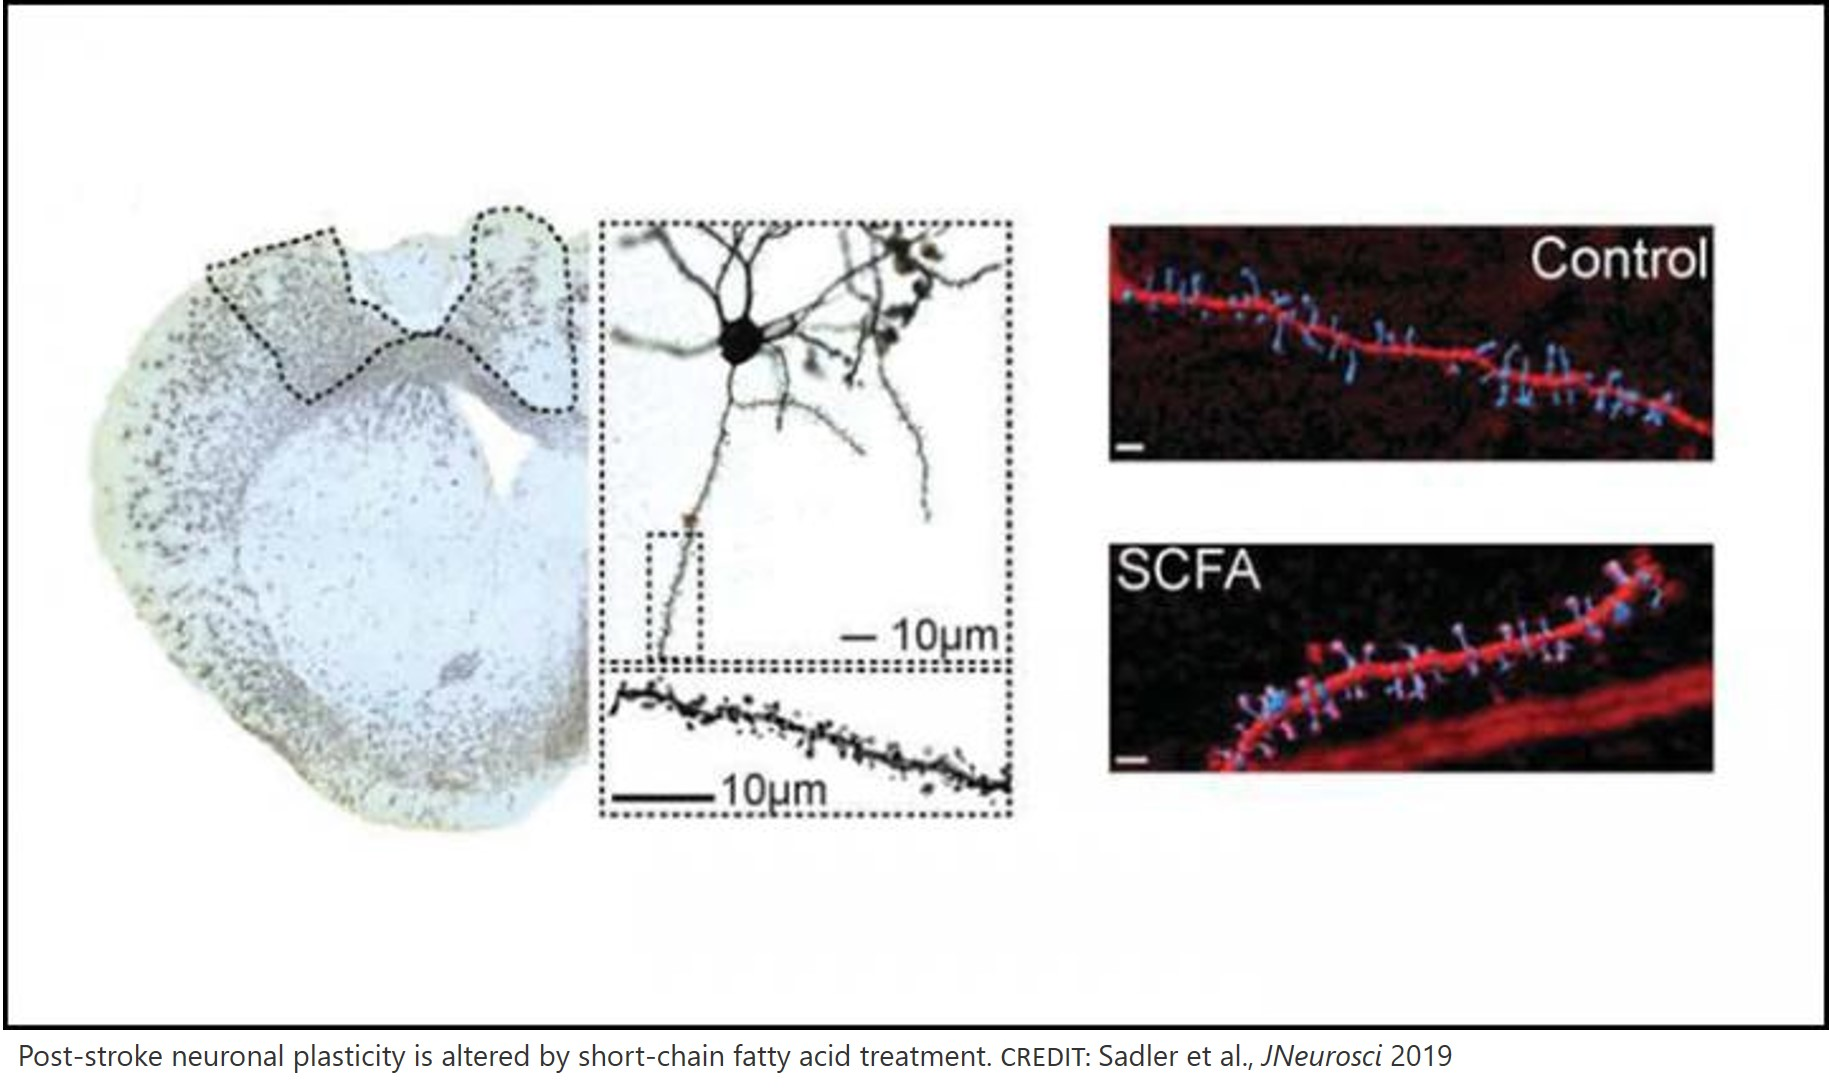 Improving stroke recovery using microbial by-products